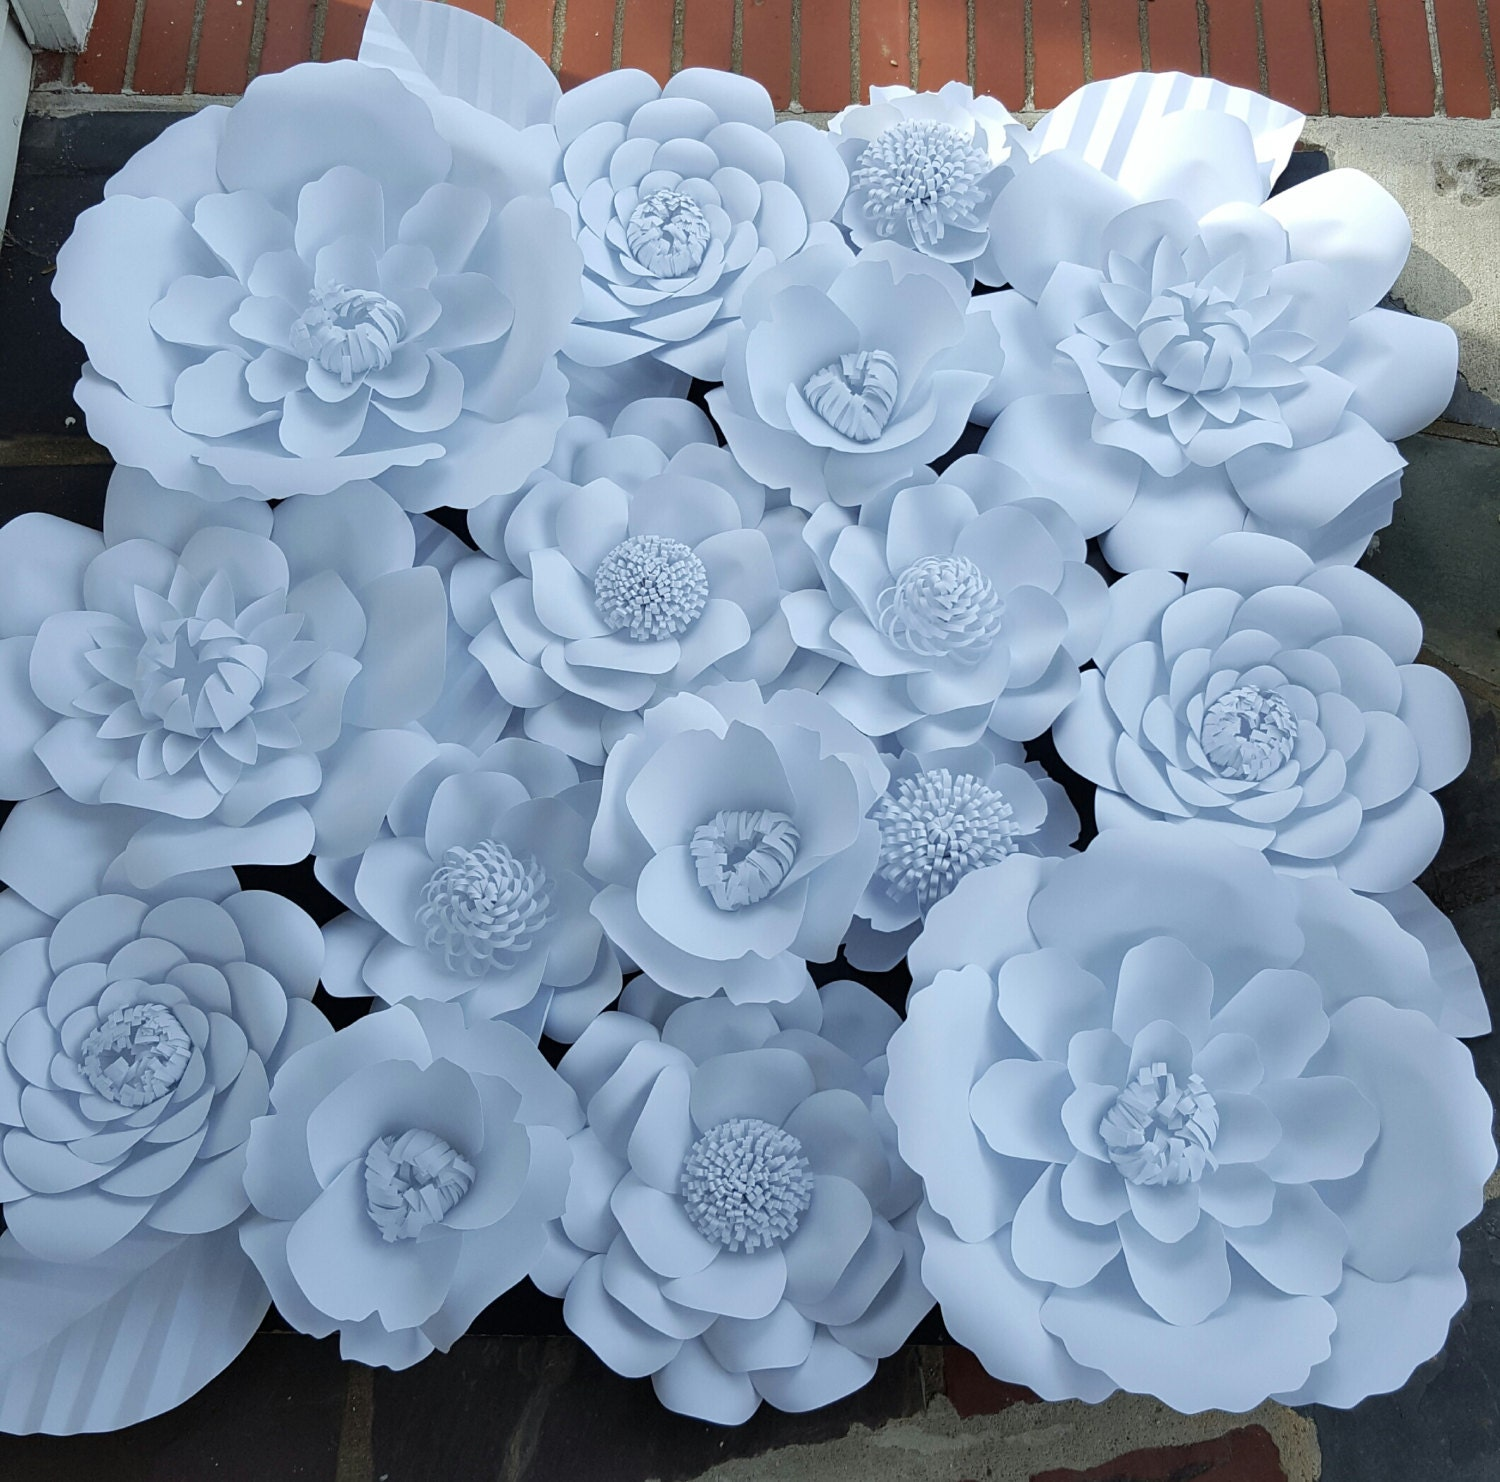 Large white paper flowers extra large paper flower 4ft x 4 ft zoom dhlflorist Choice Image